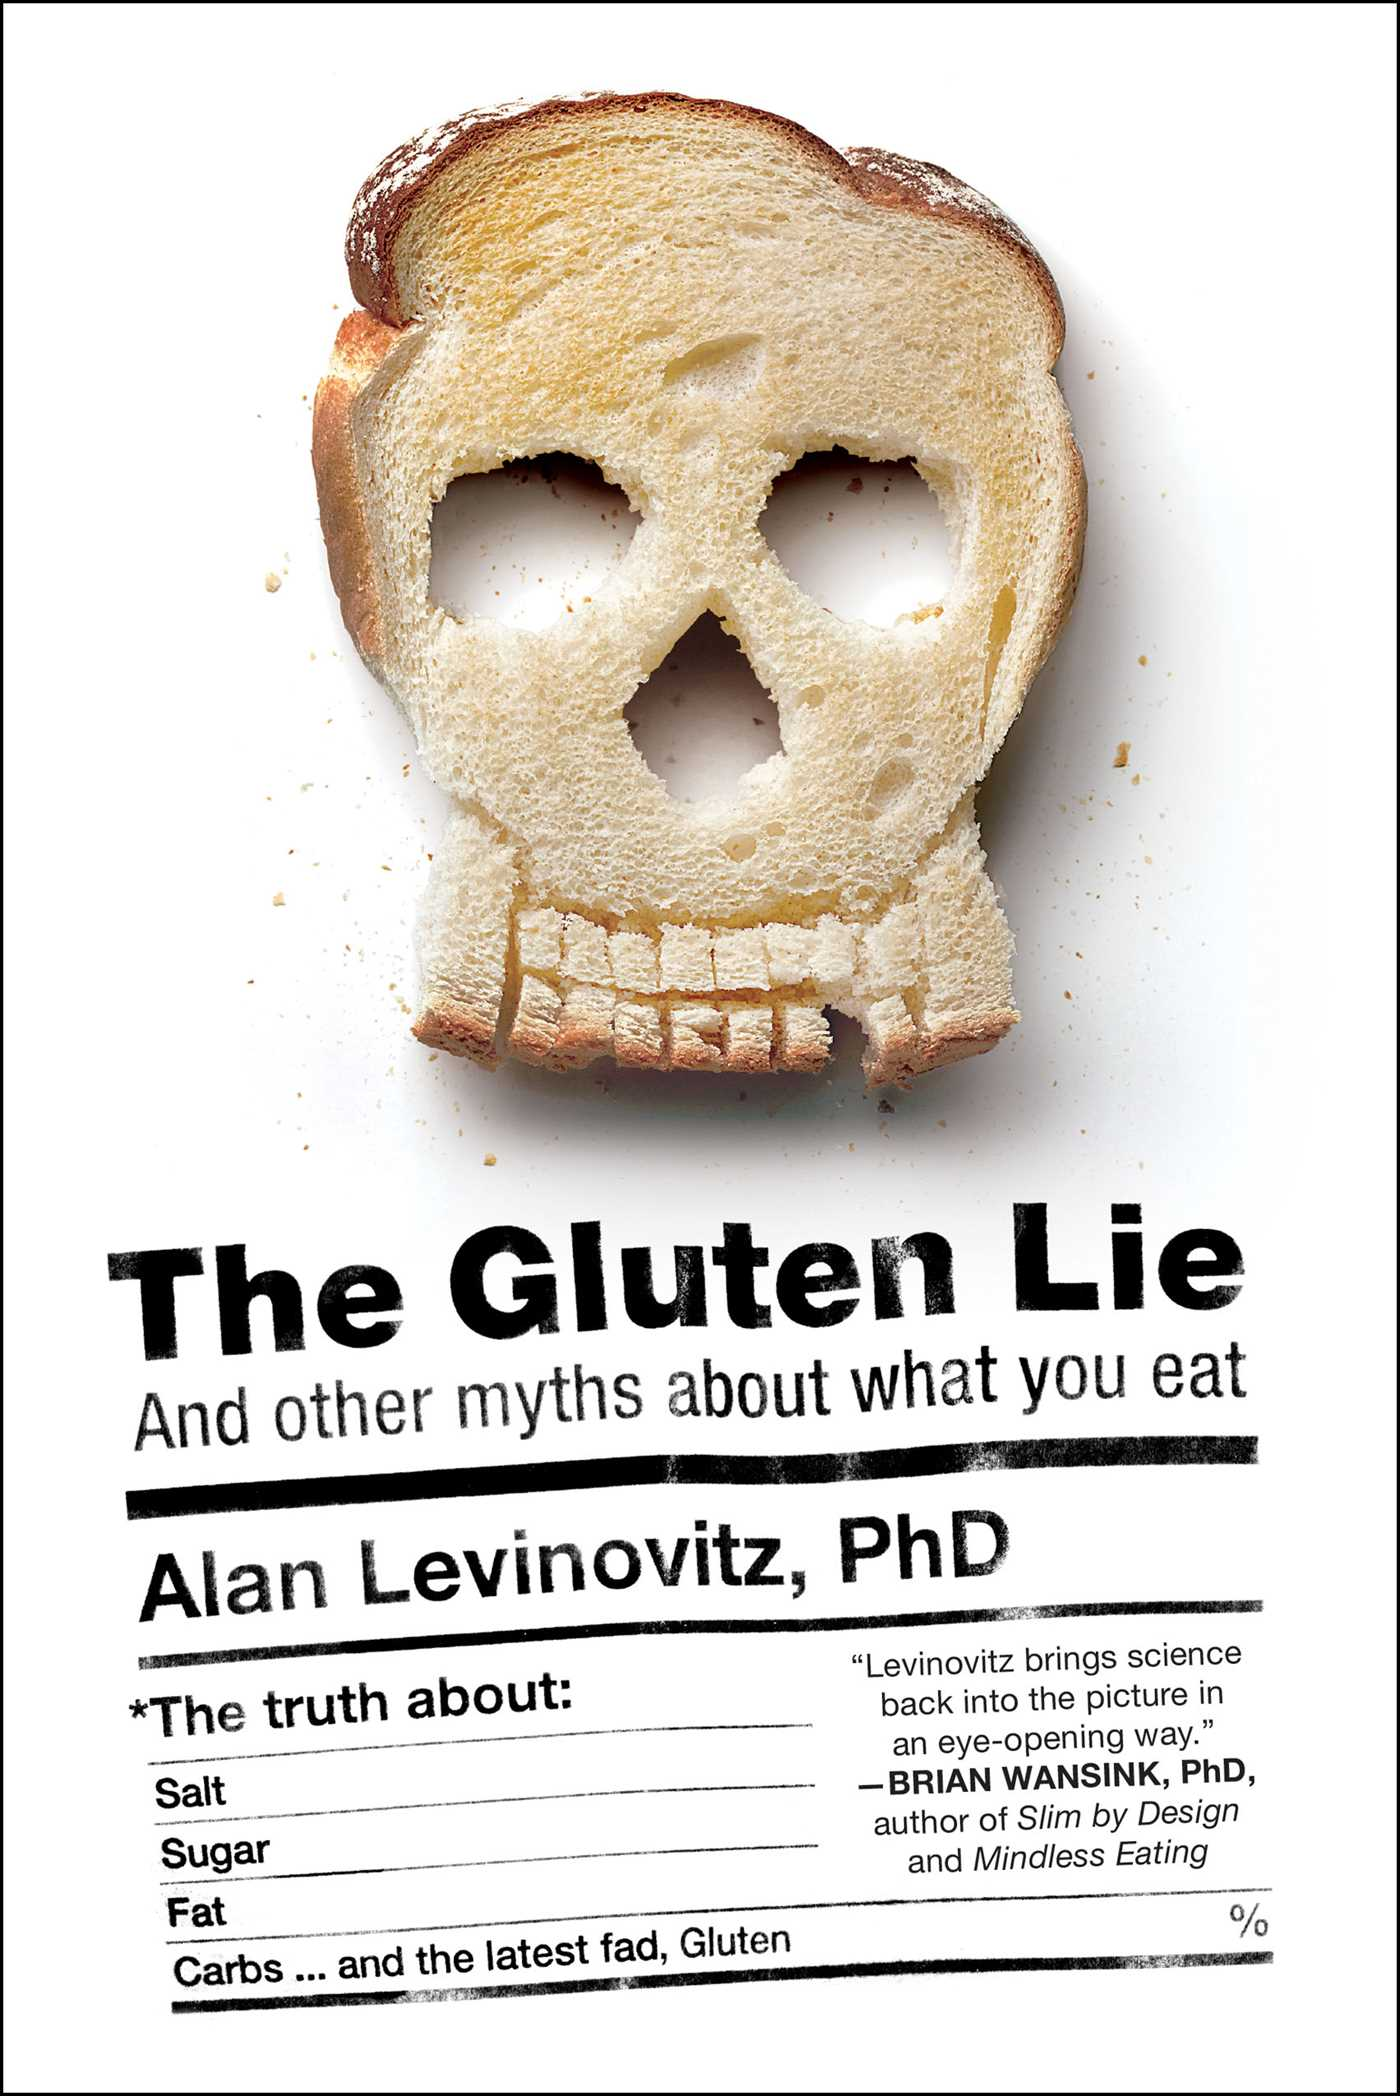 The gluten lie 9781941393062 hr